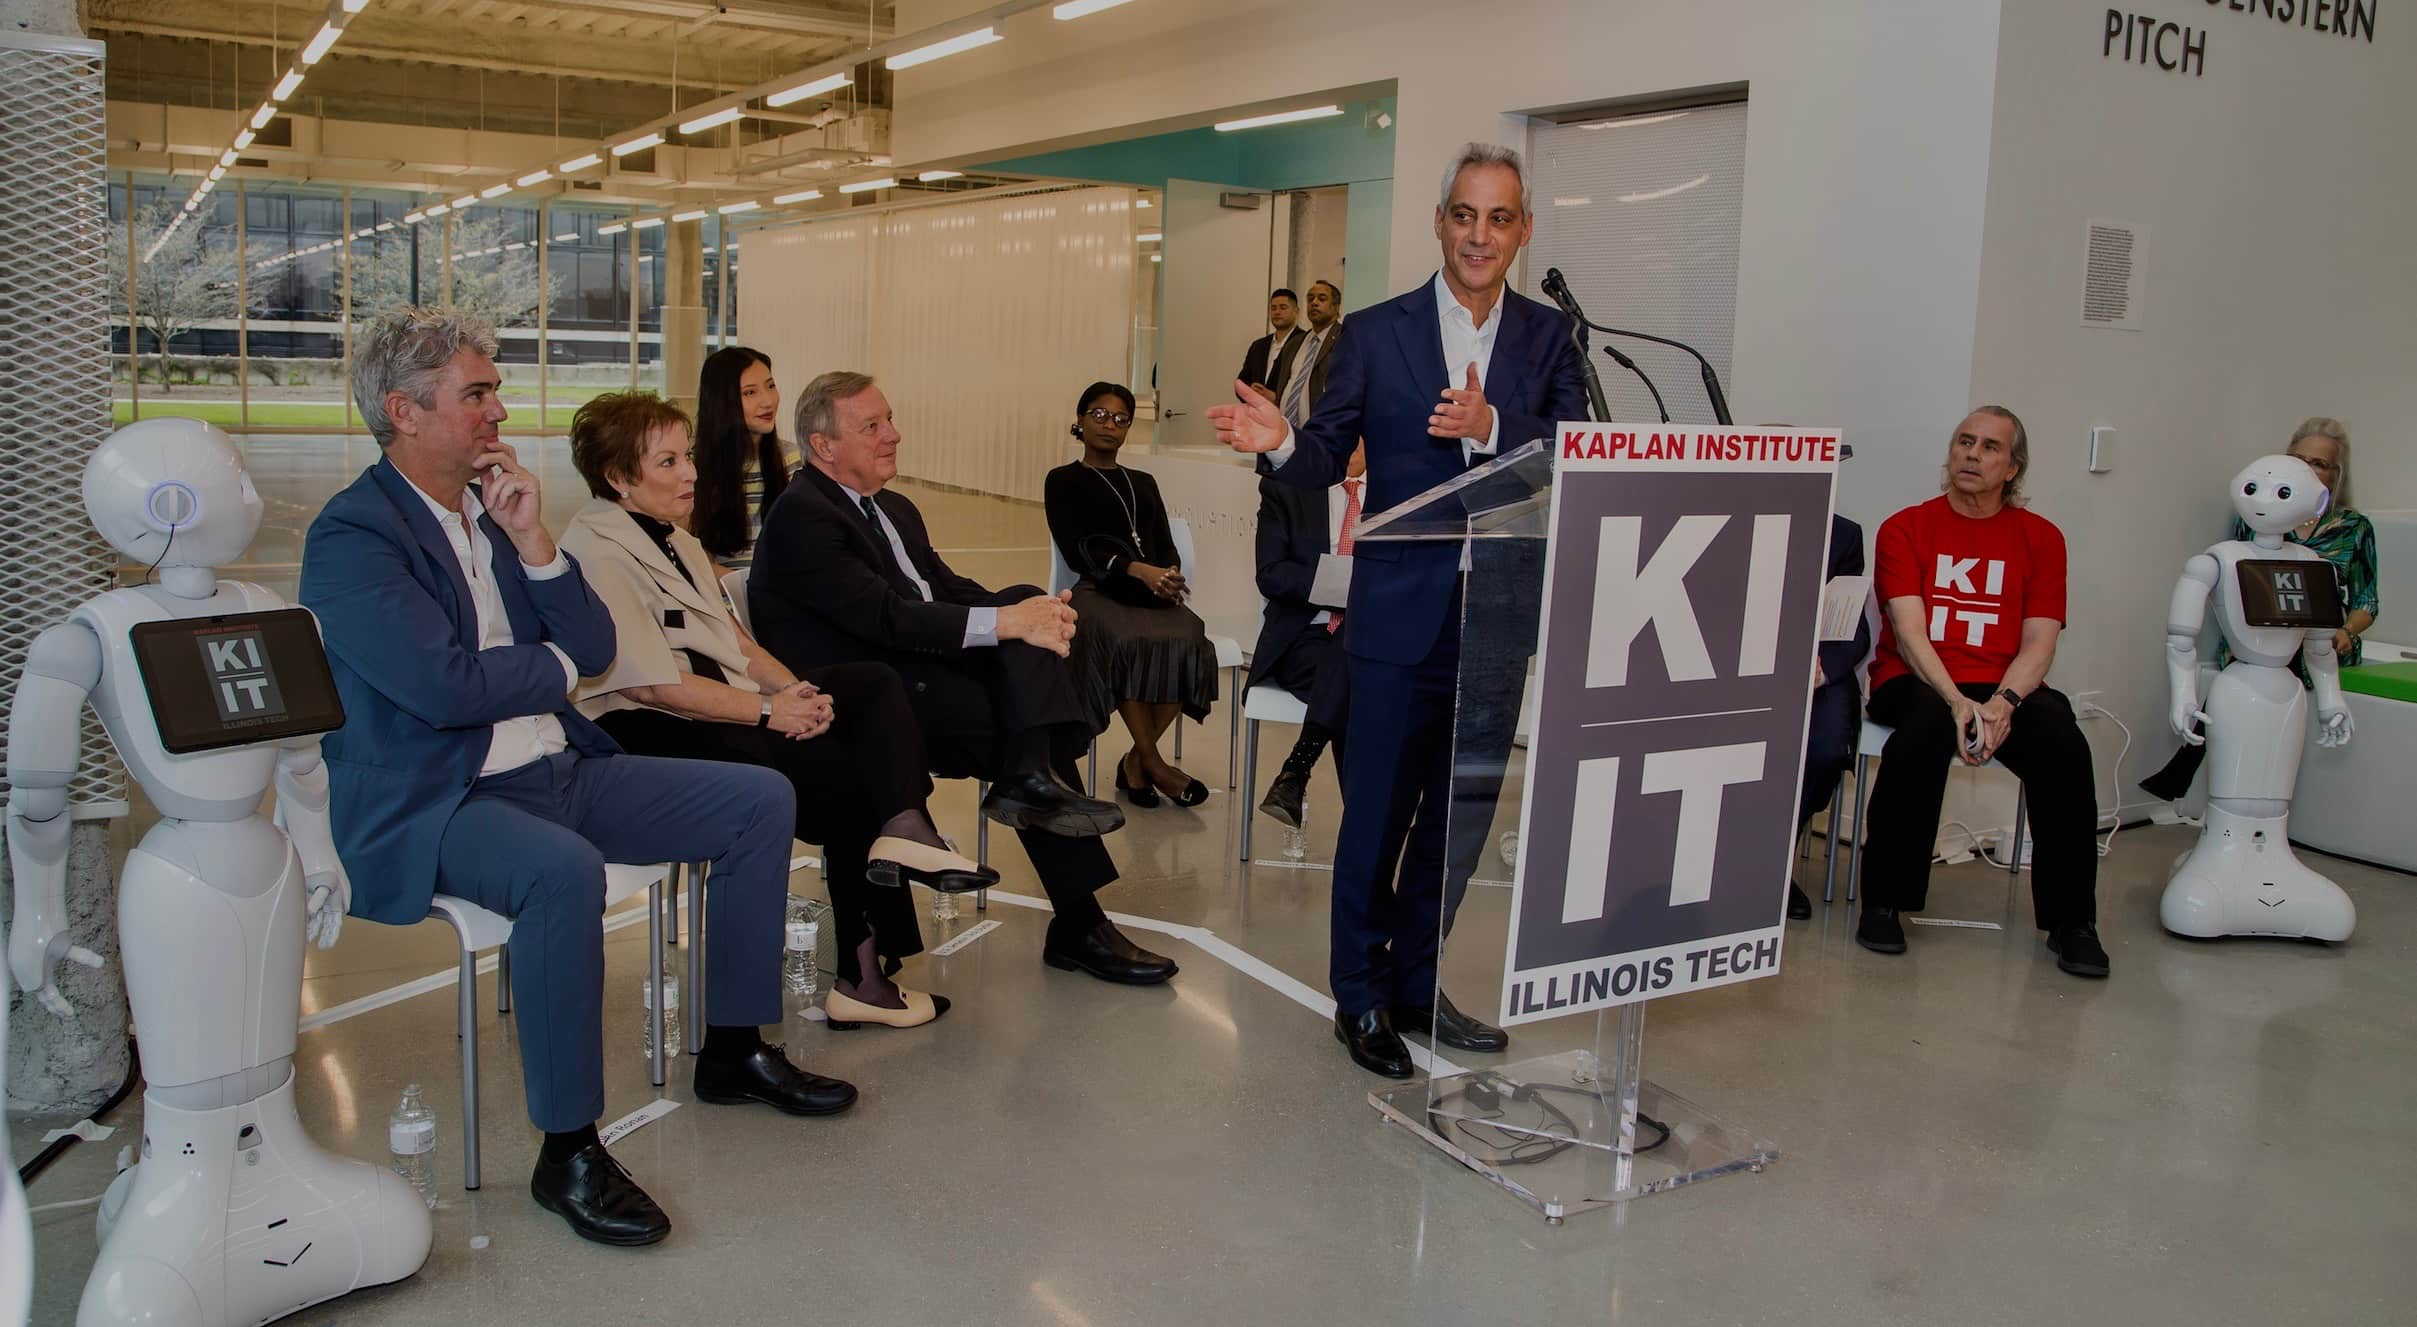 - JT partnered with the Illinois Institute of Technology to maximize media attention for the grand opening of its first new academic building in nearly 40 years.